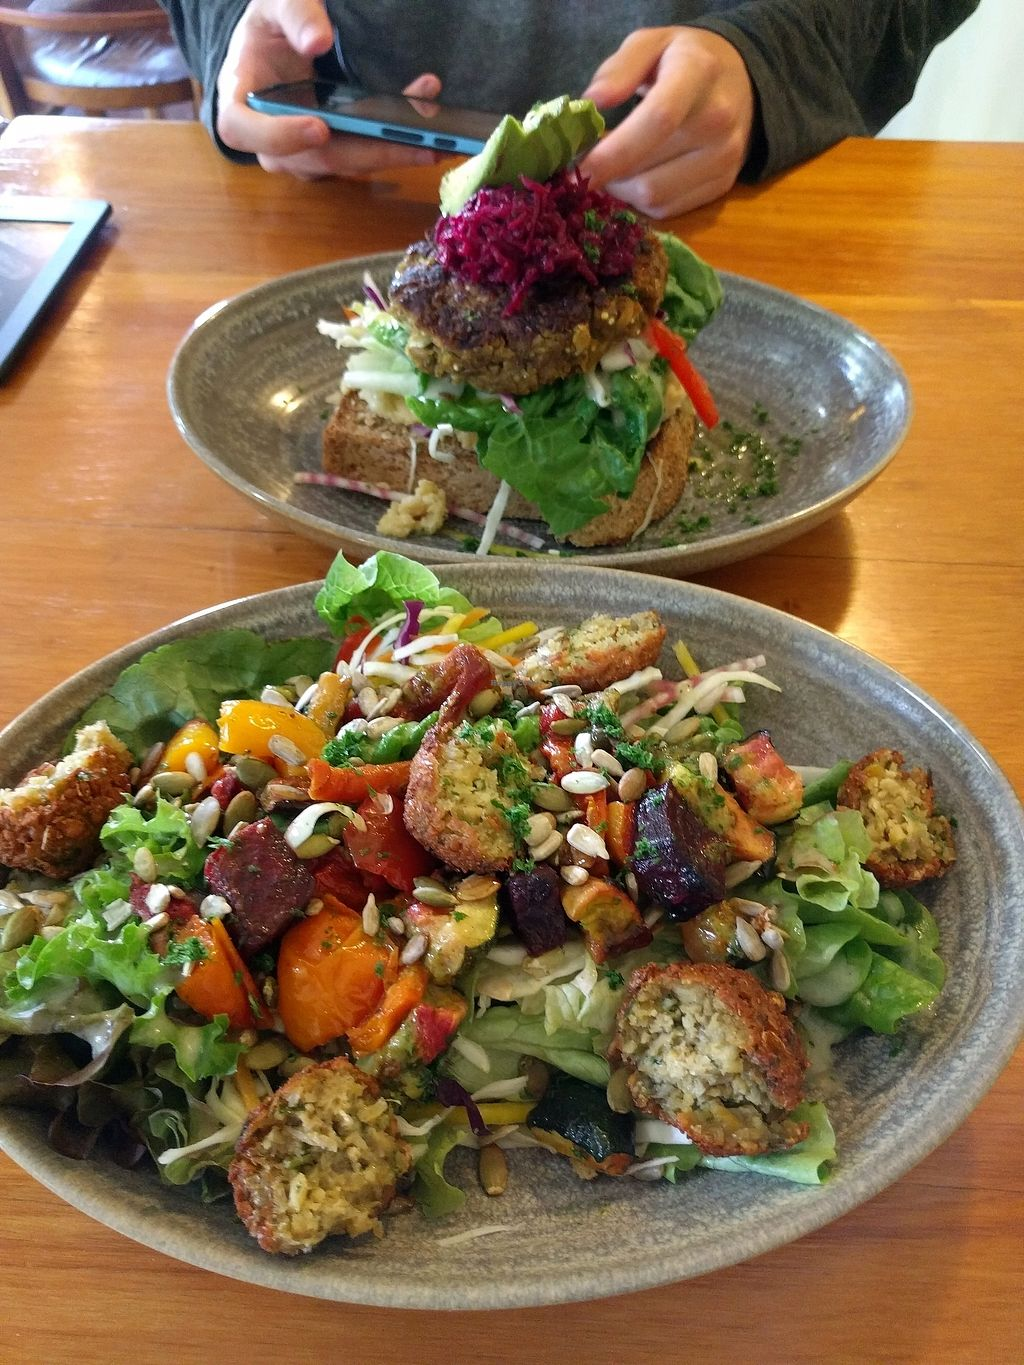 """Photo of Hislop's Cafe  by <a href=""""/members/profile/avs443"""">avs443</a> <br/>salad and burger dishes  <br/> February 23, 2018  - <a href='/contact/abuse/image/6890/362915'>Report</a>"""